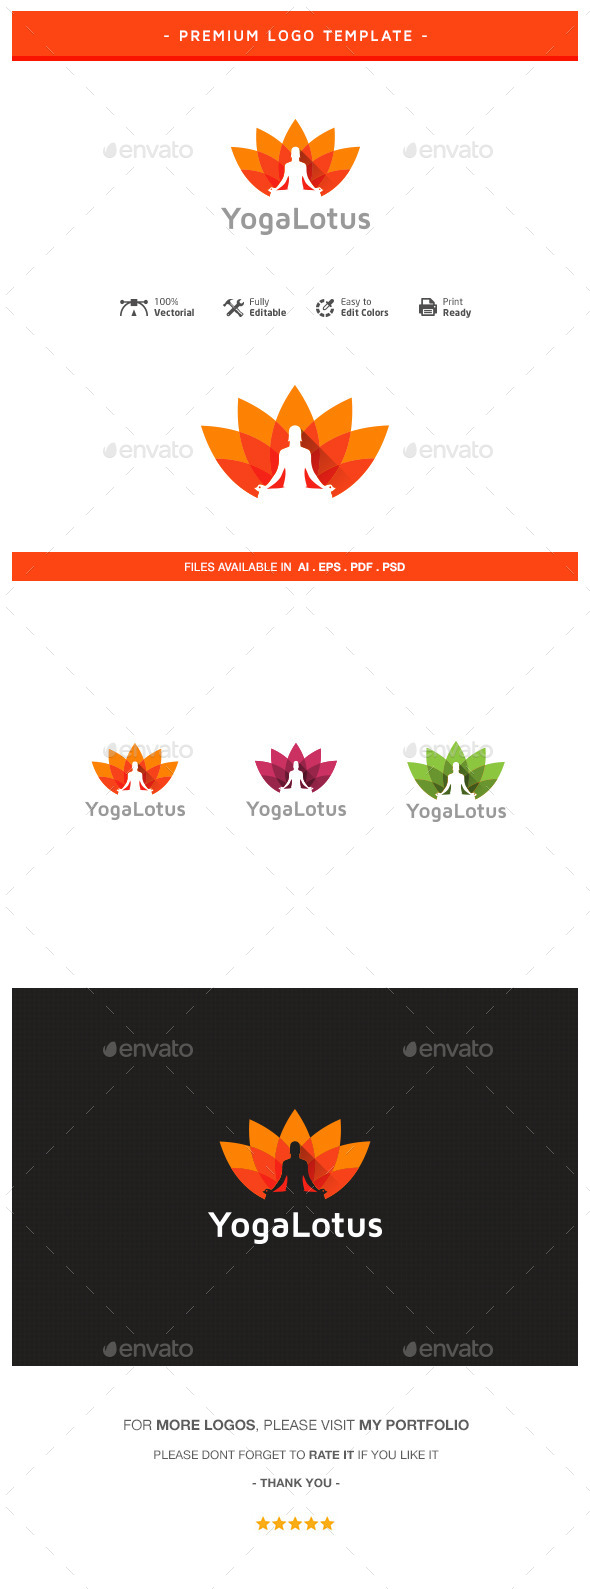 GraphicRiver Yoga Lotus Logo Template 10707706